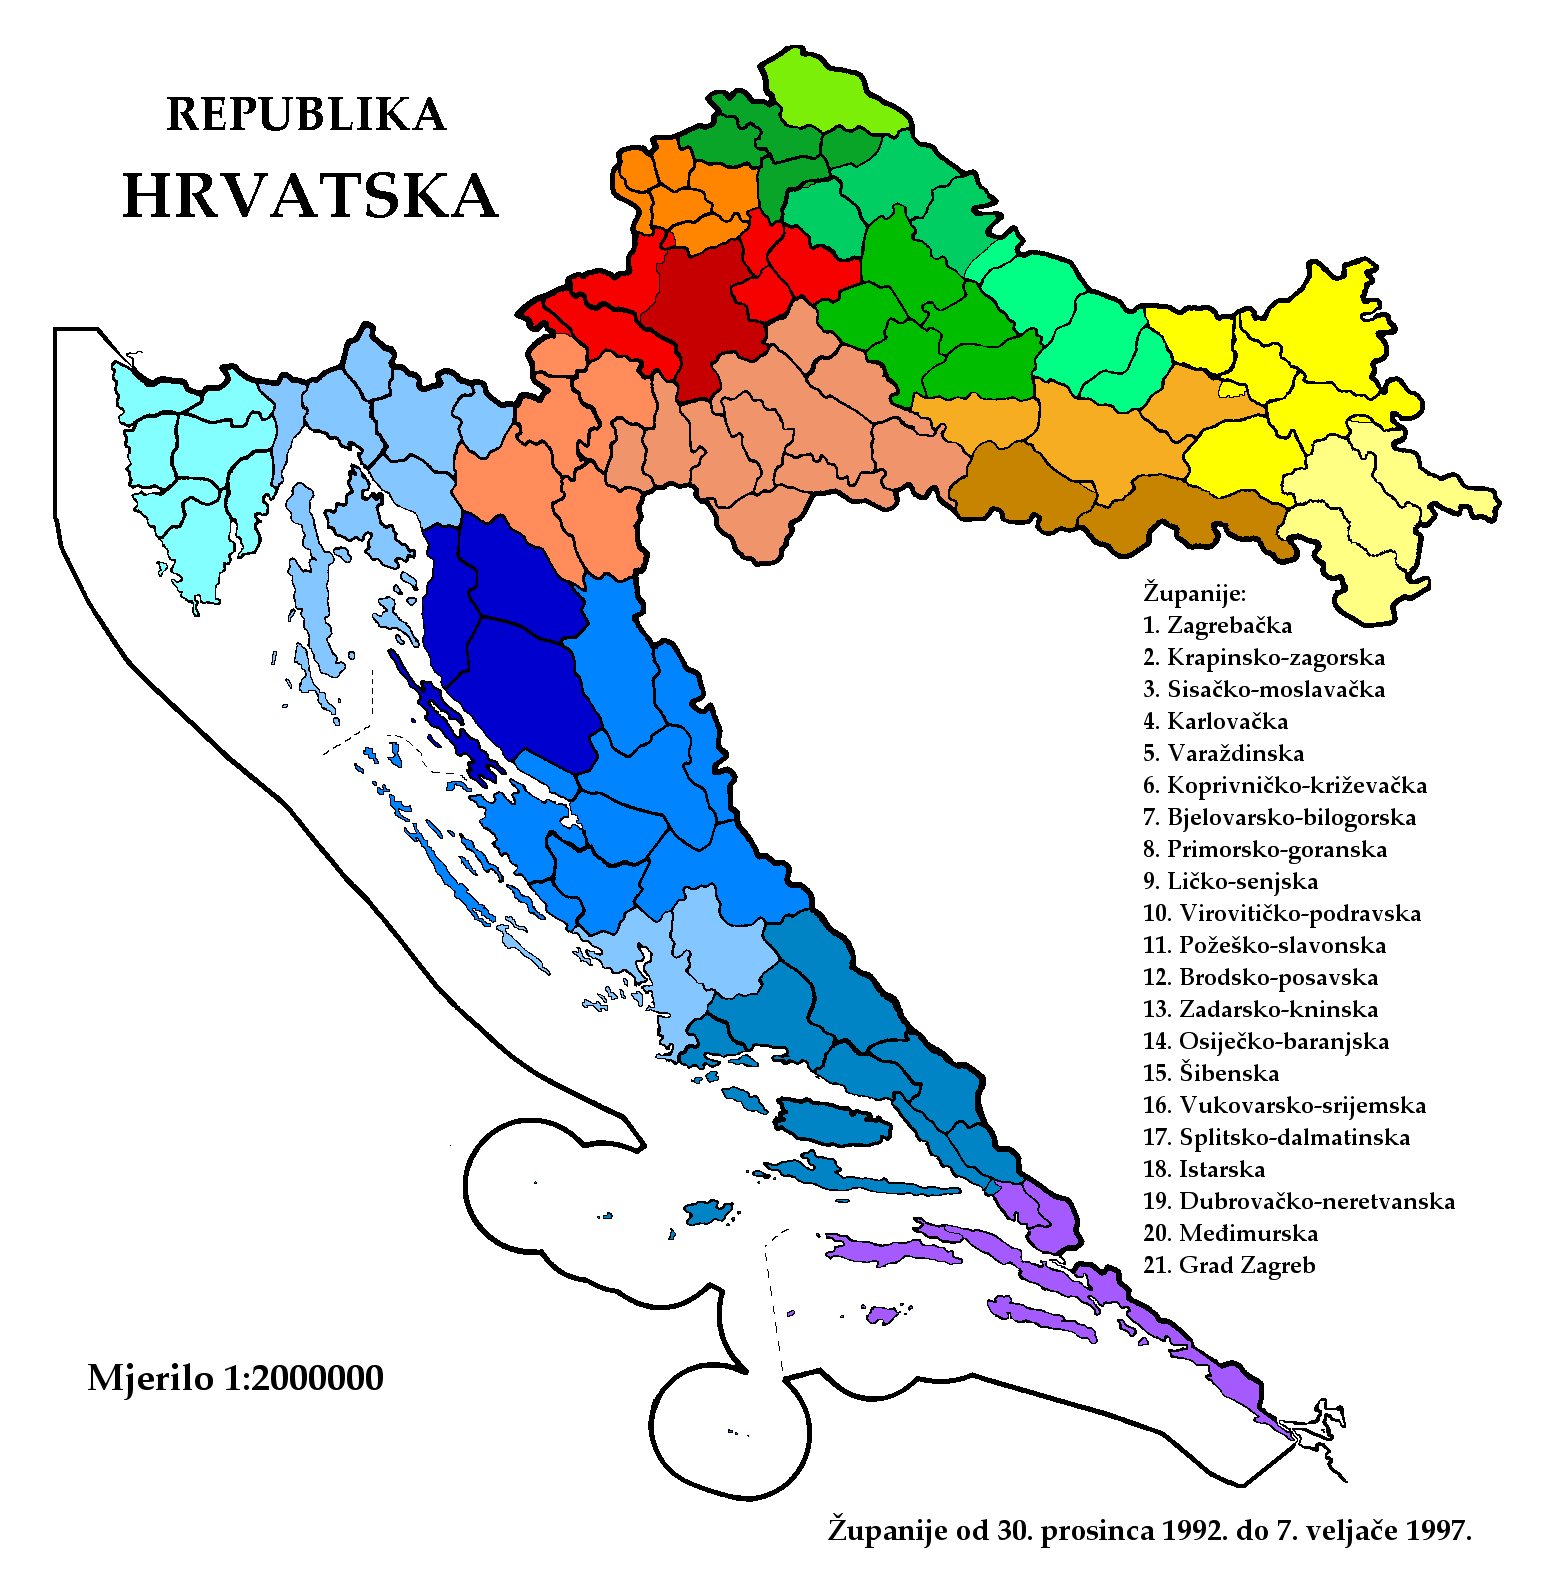 Zupanije Republike Hrvatske Od 1992 12 30 Do 1997 02 07